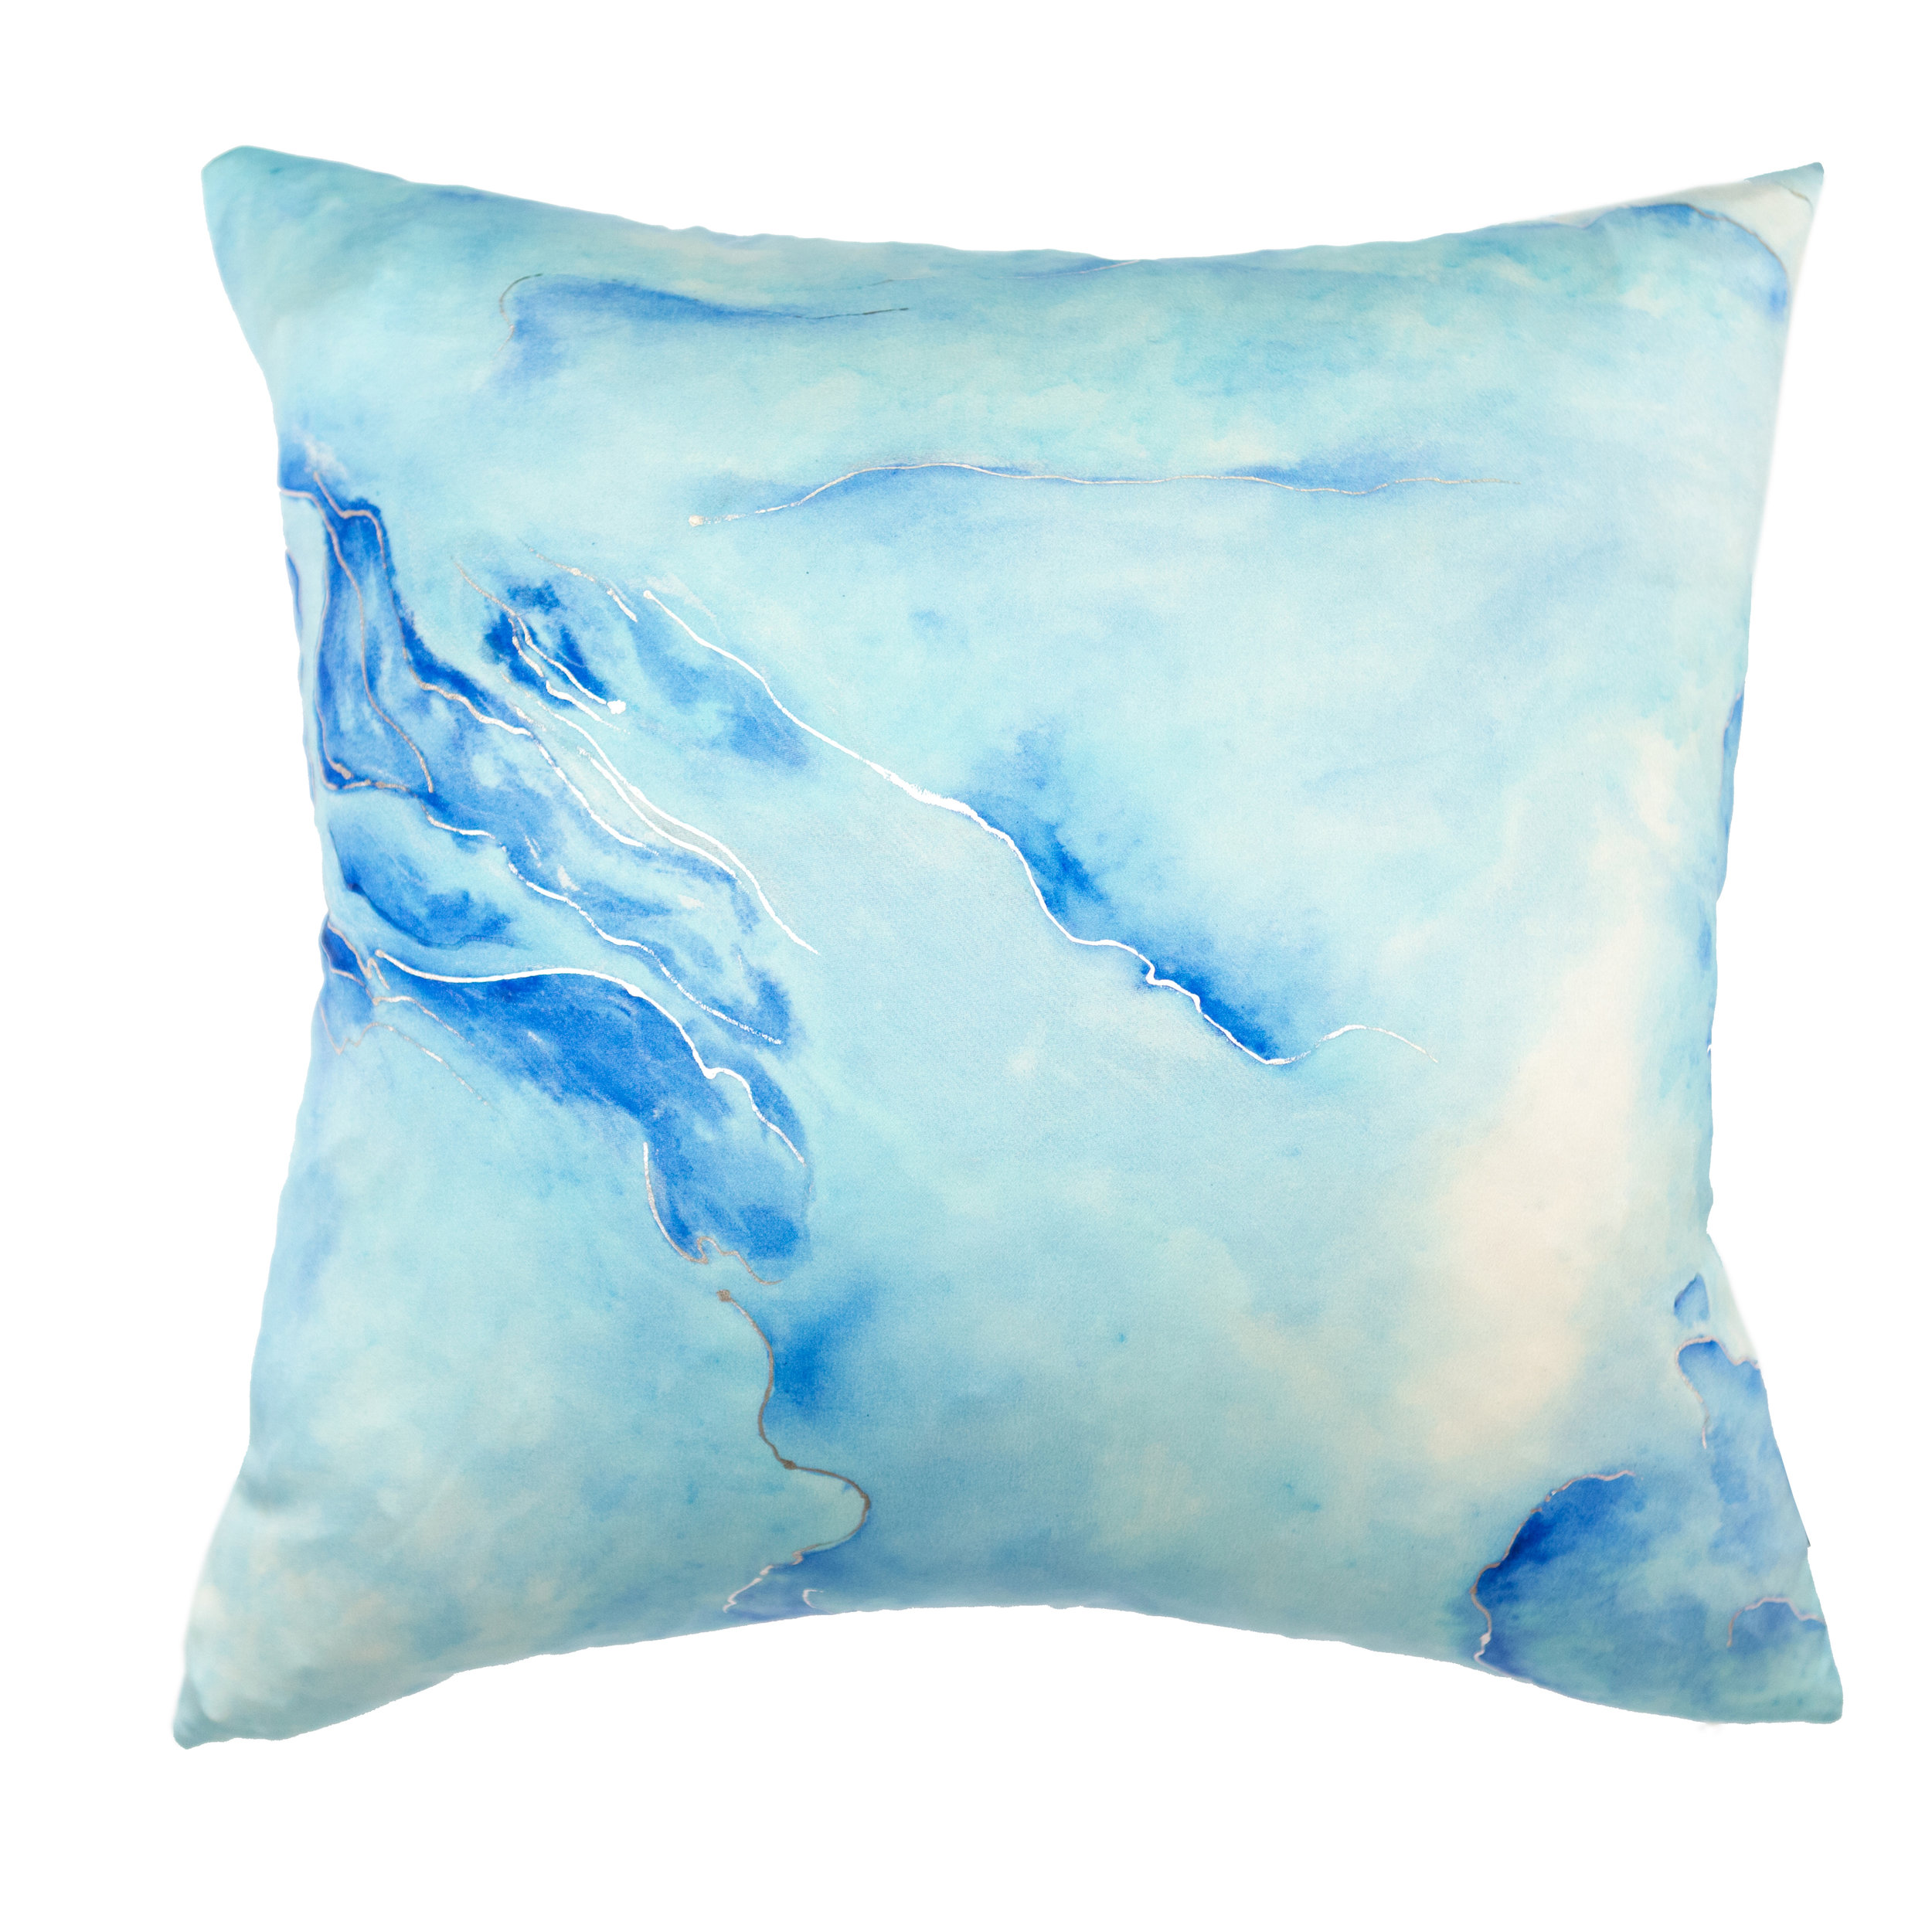 Marie-Burgos-Design.Glacier-1-Pillow.MBcollection.jpg